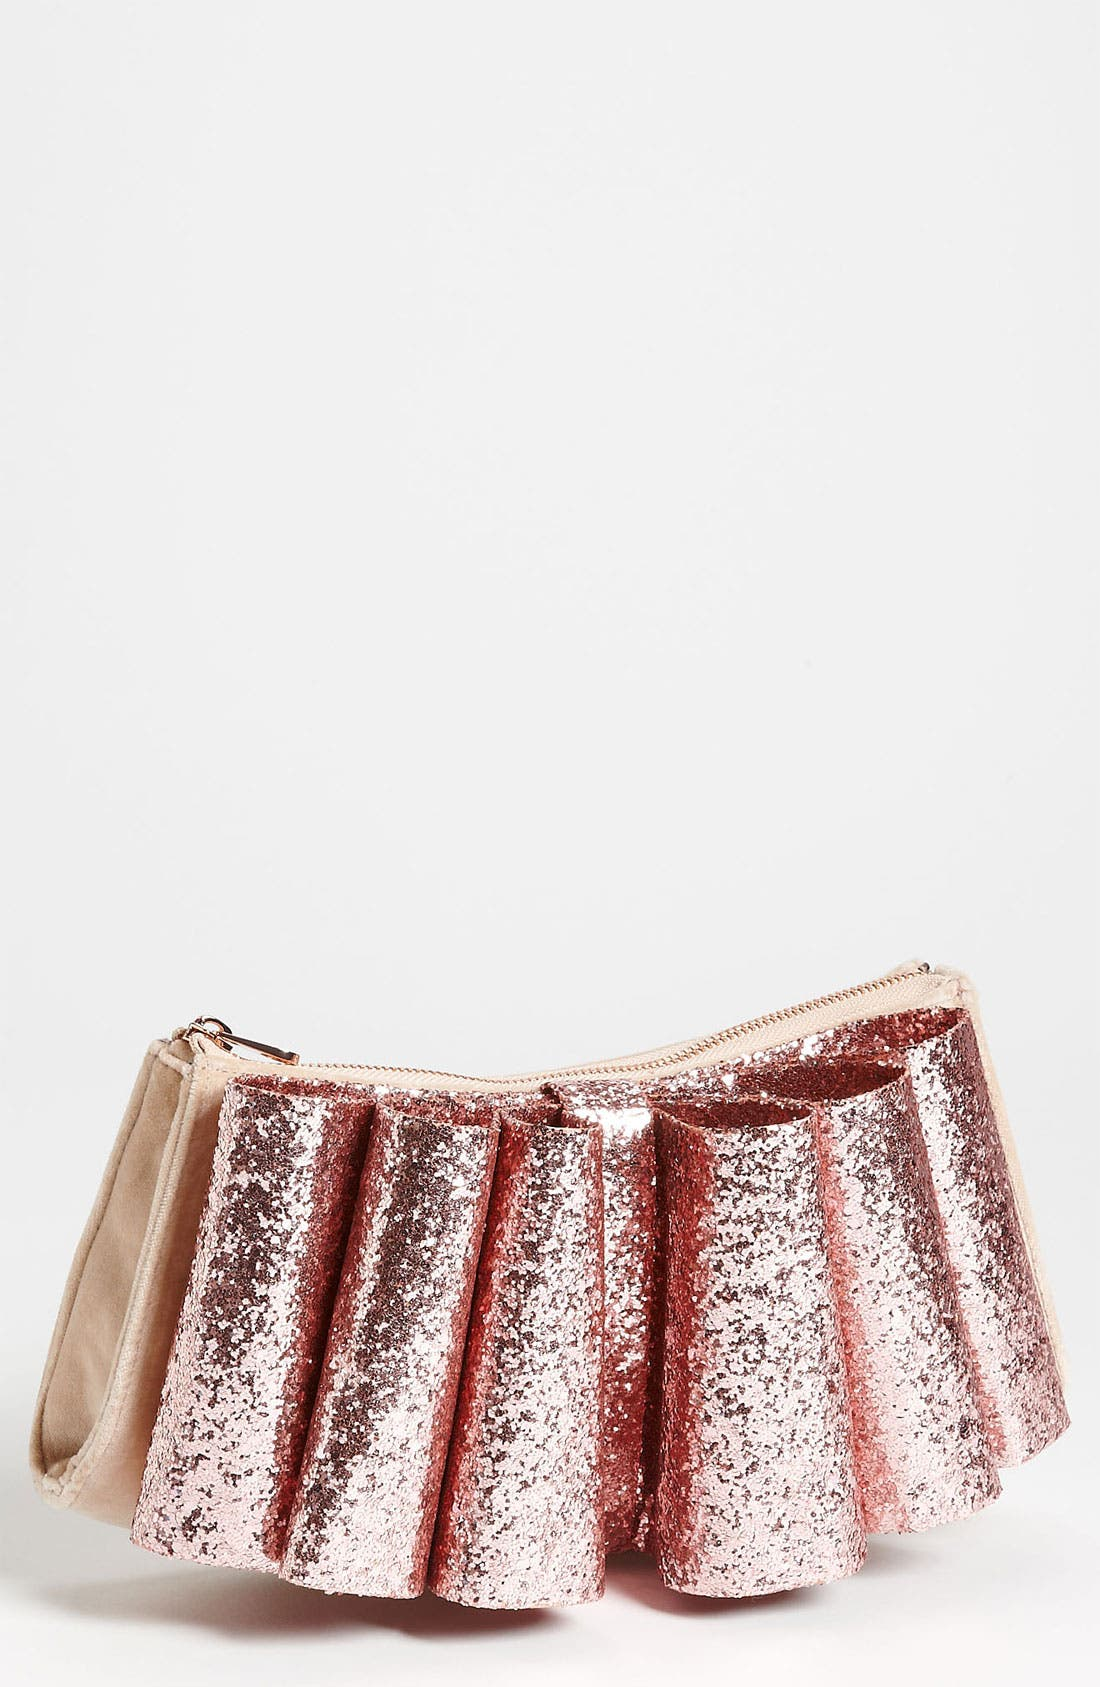 Alternate Image 1 Selected - Ted Baker London 'Langley Glitter Bow' Clutch